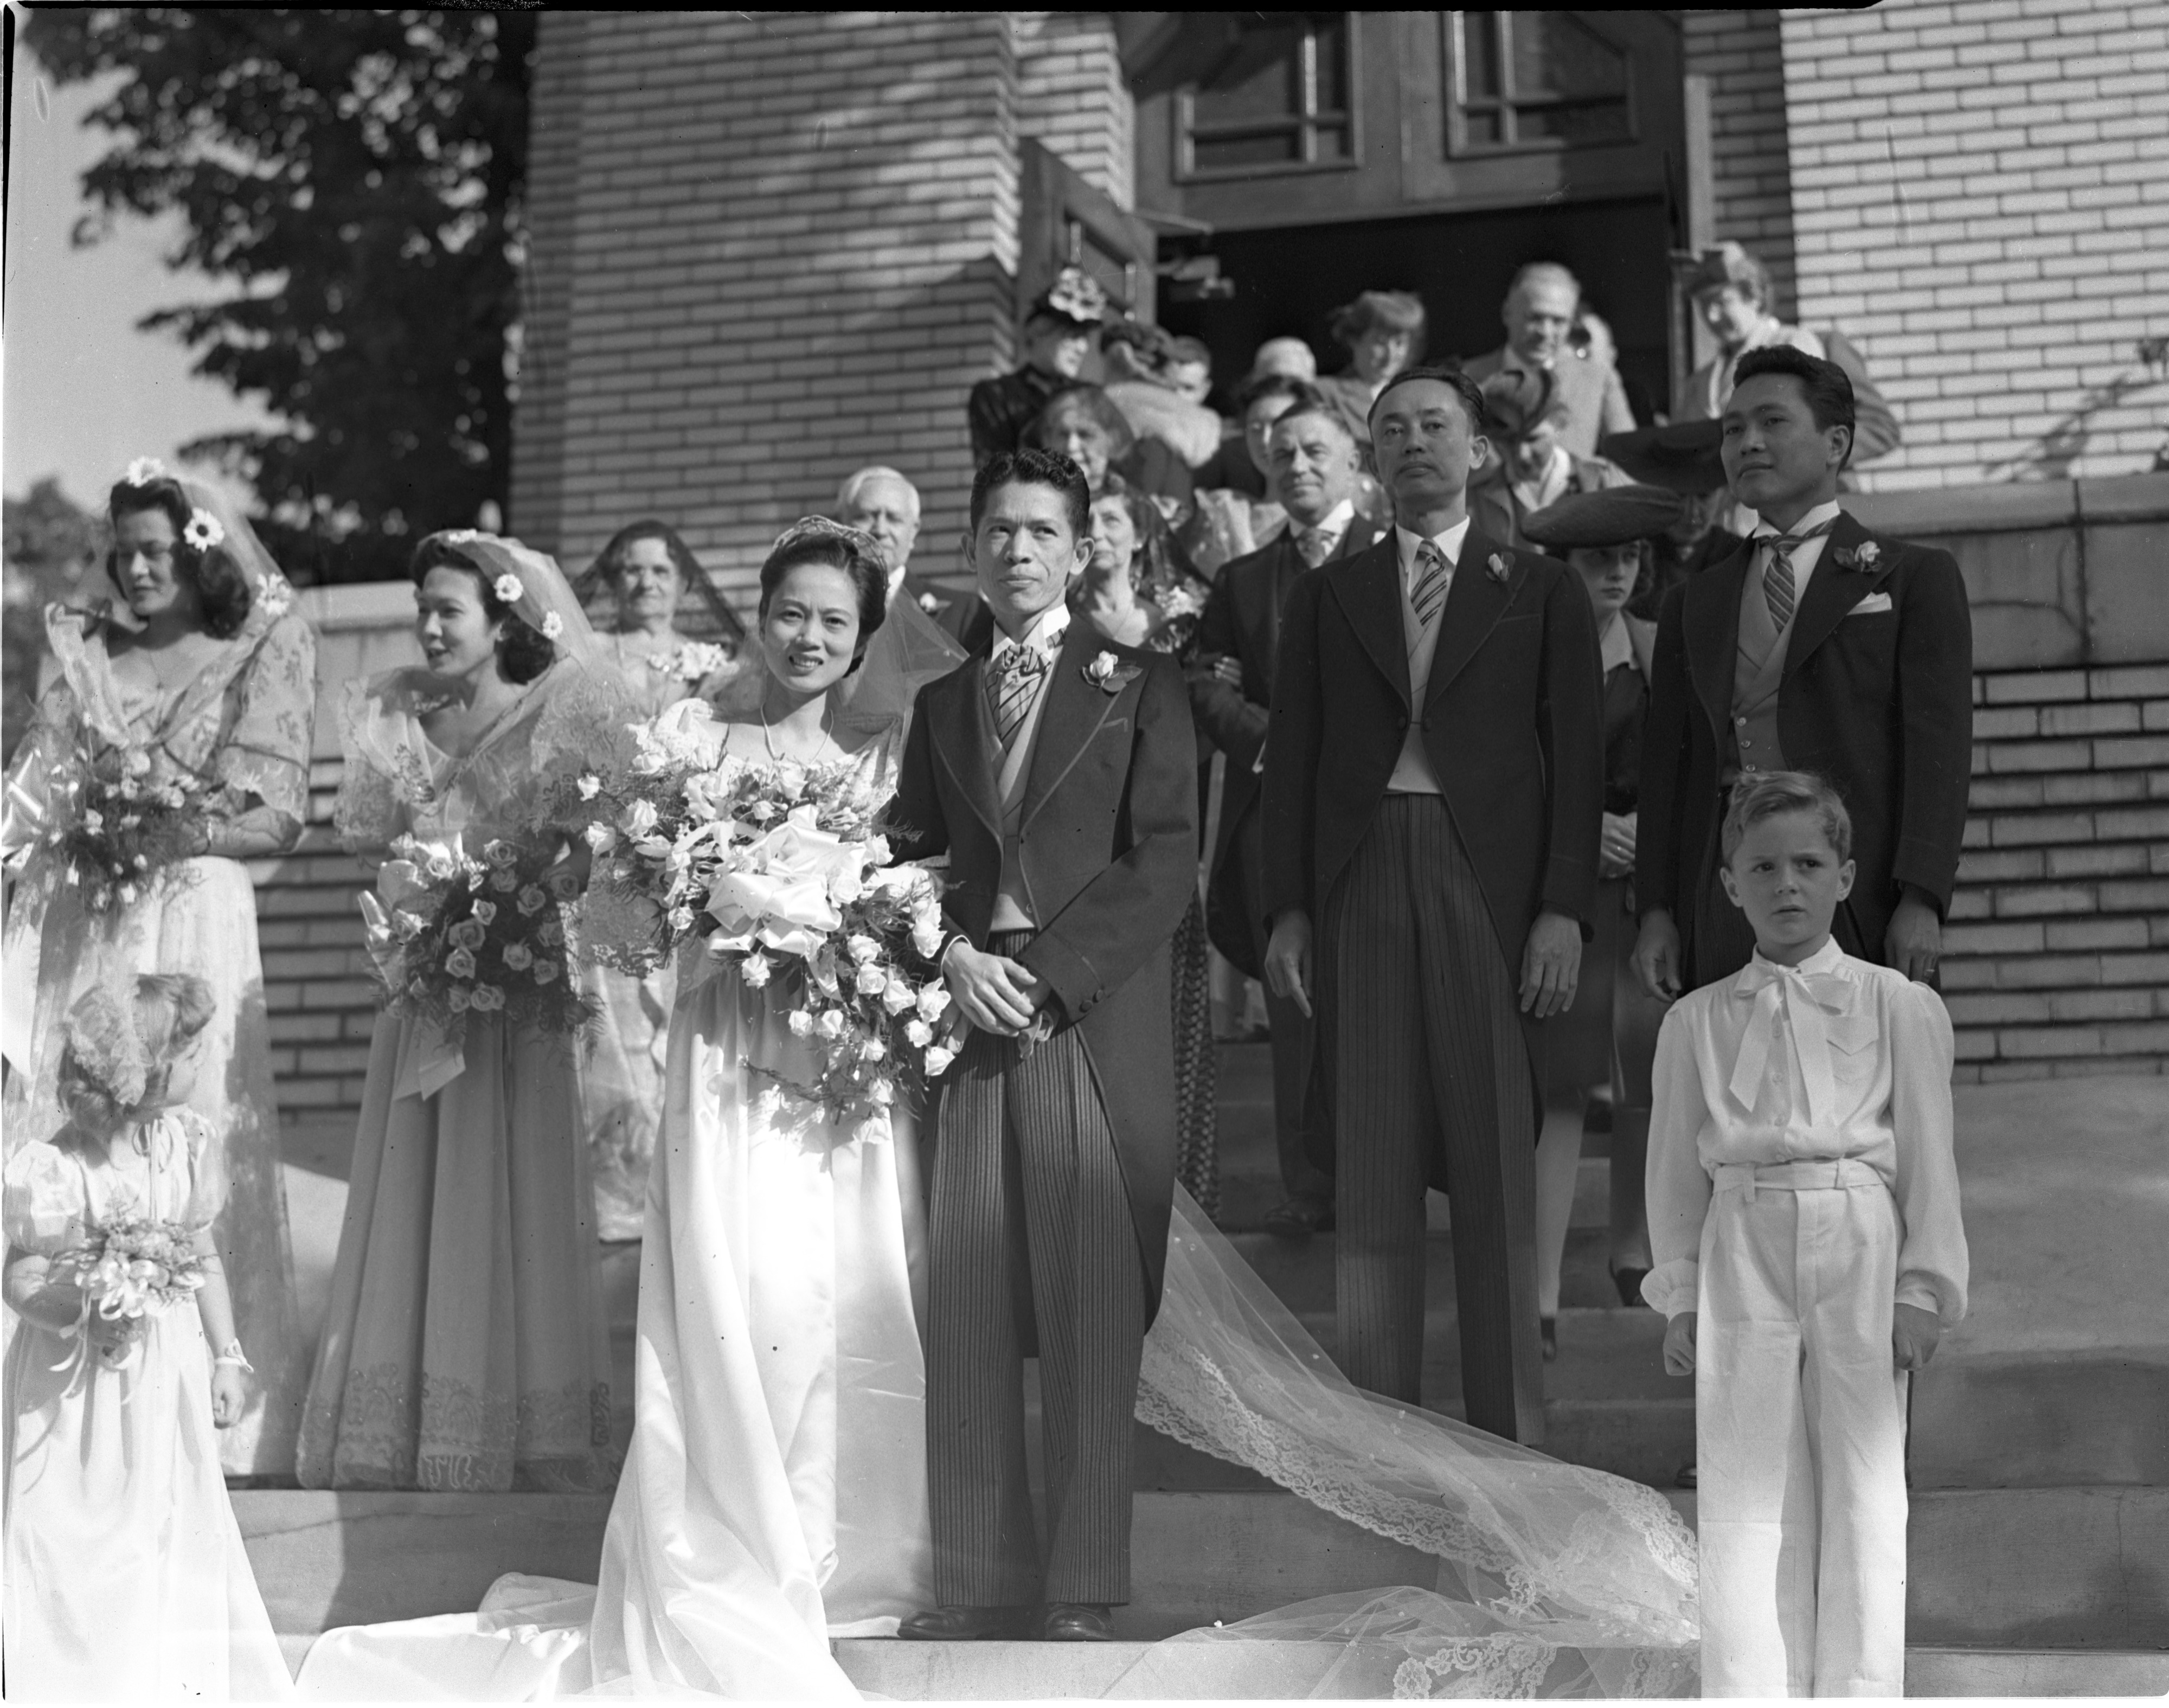 Newly Married Rafaelita Hilario & Dr. Jesus L. Soriano Leave St. Mary's Chapel - September 25, 1943 image